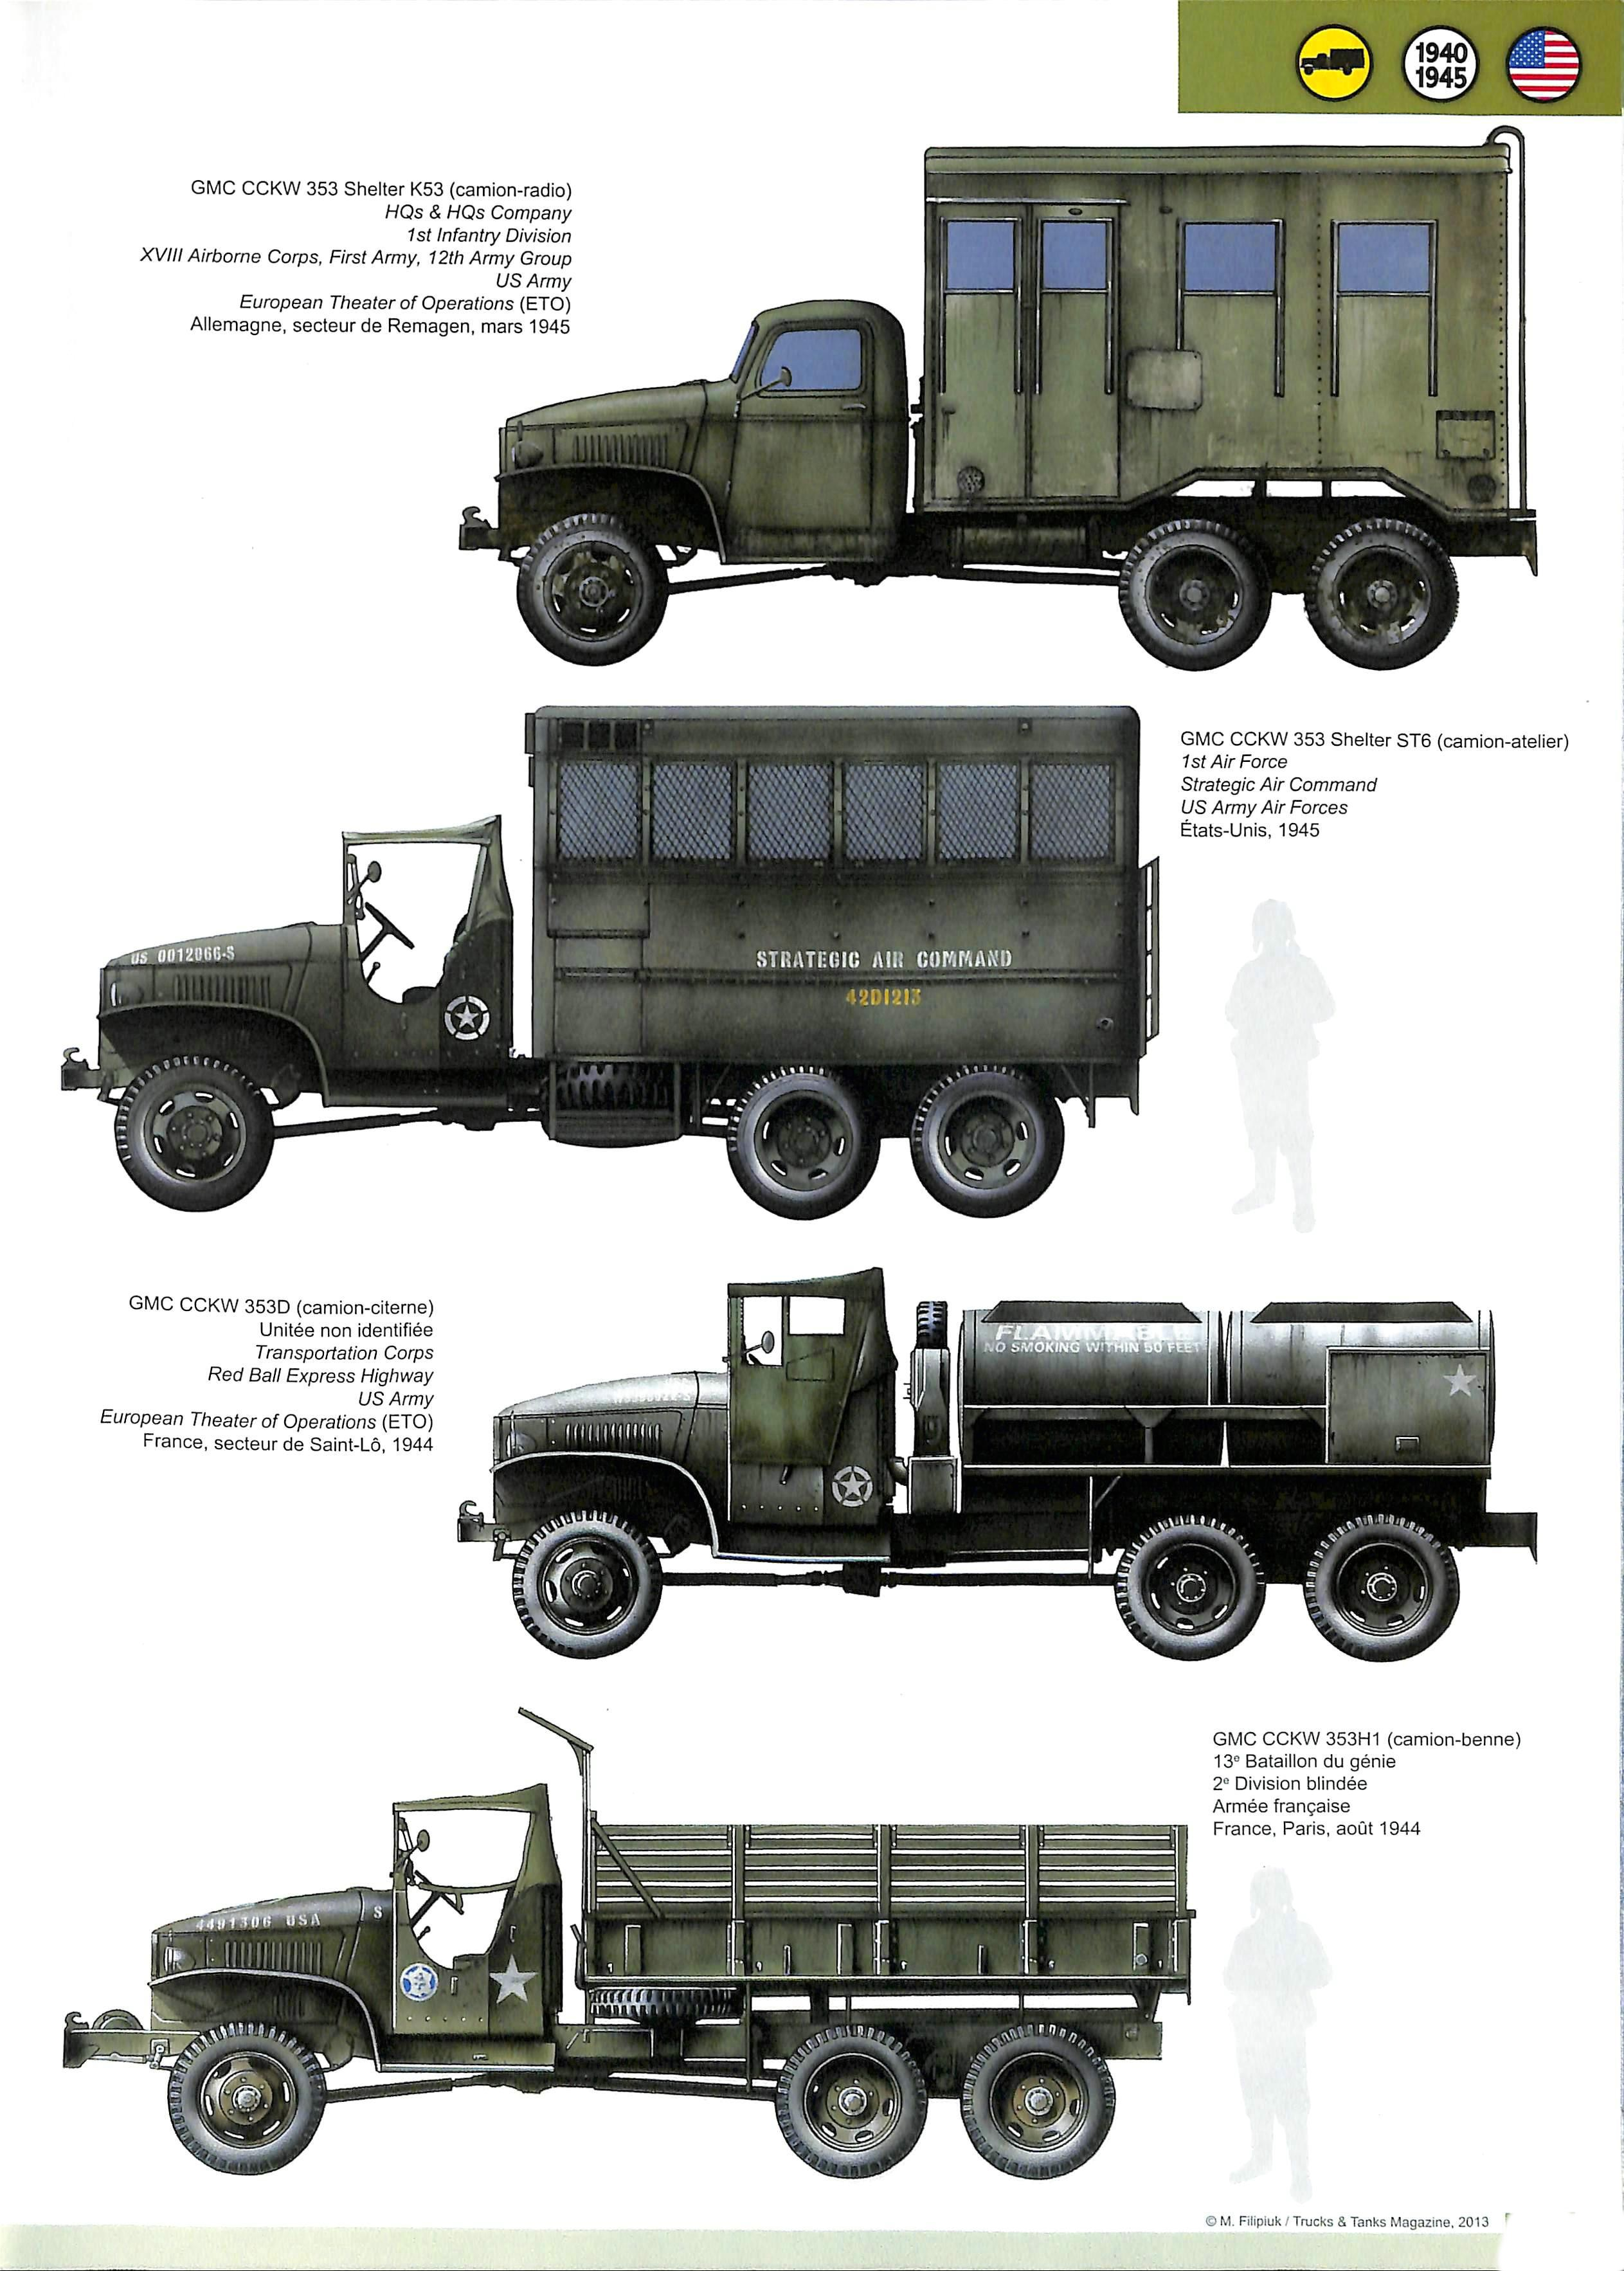 WWII US Army Trucks | Weapons and Warfare